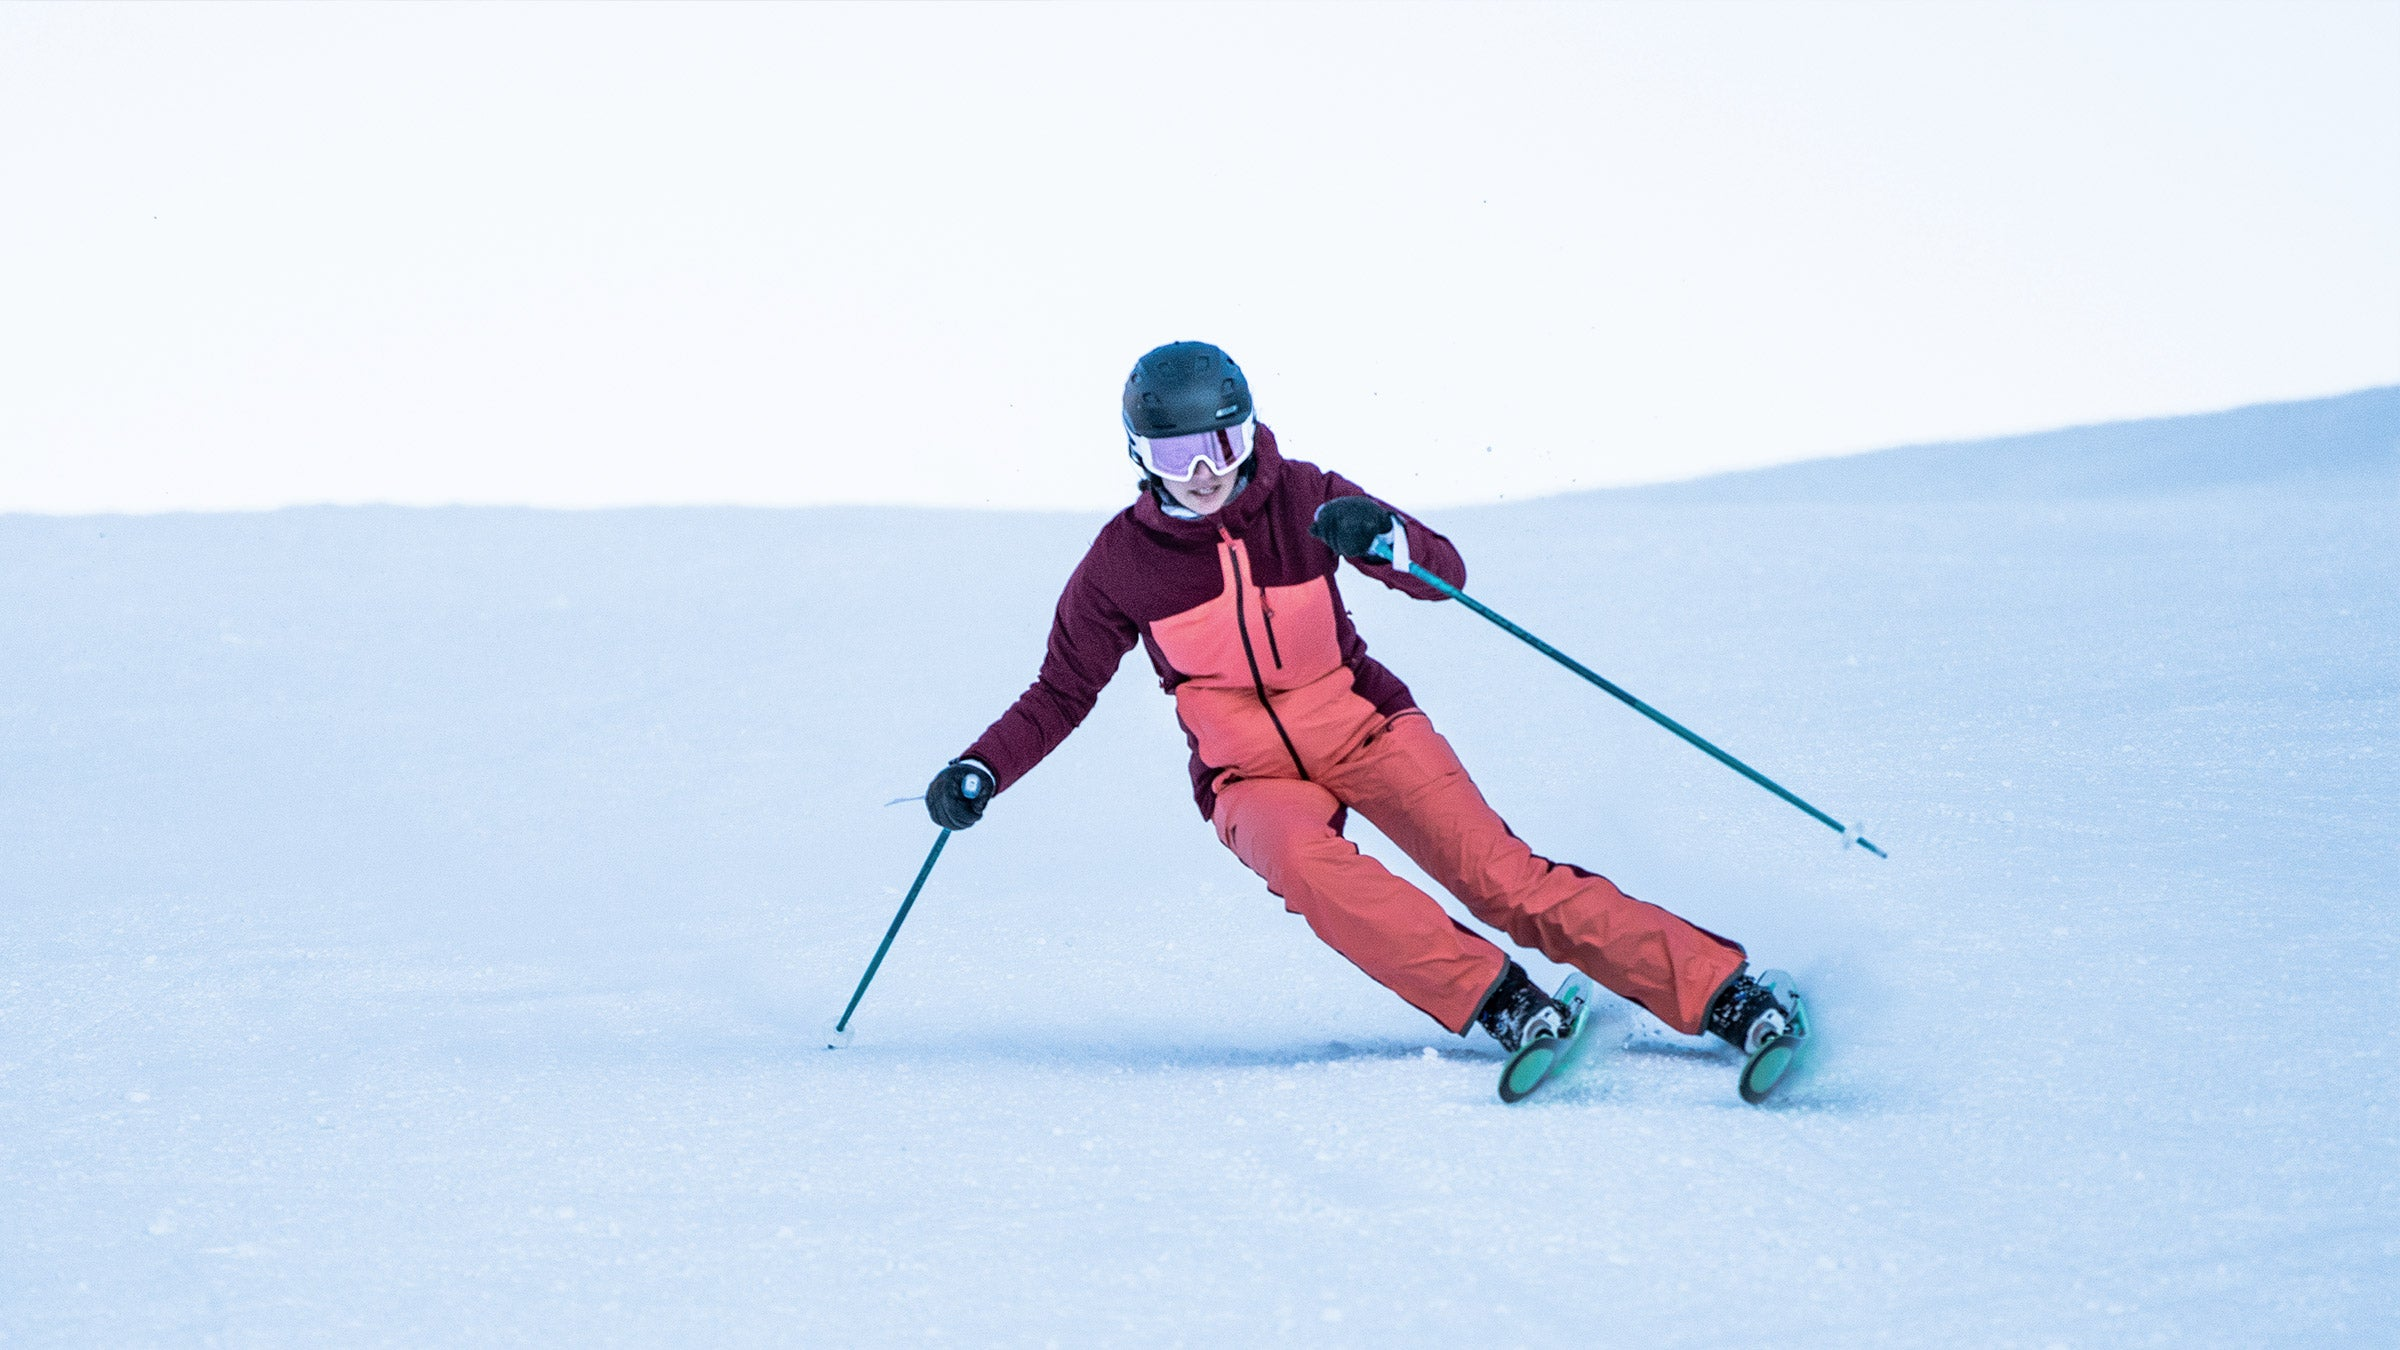 skier carving in eden jacket on aspen mountain